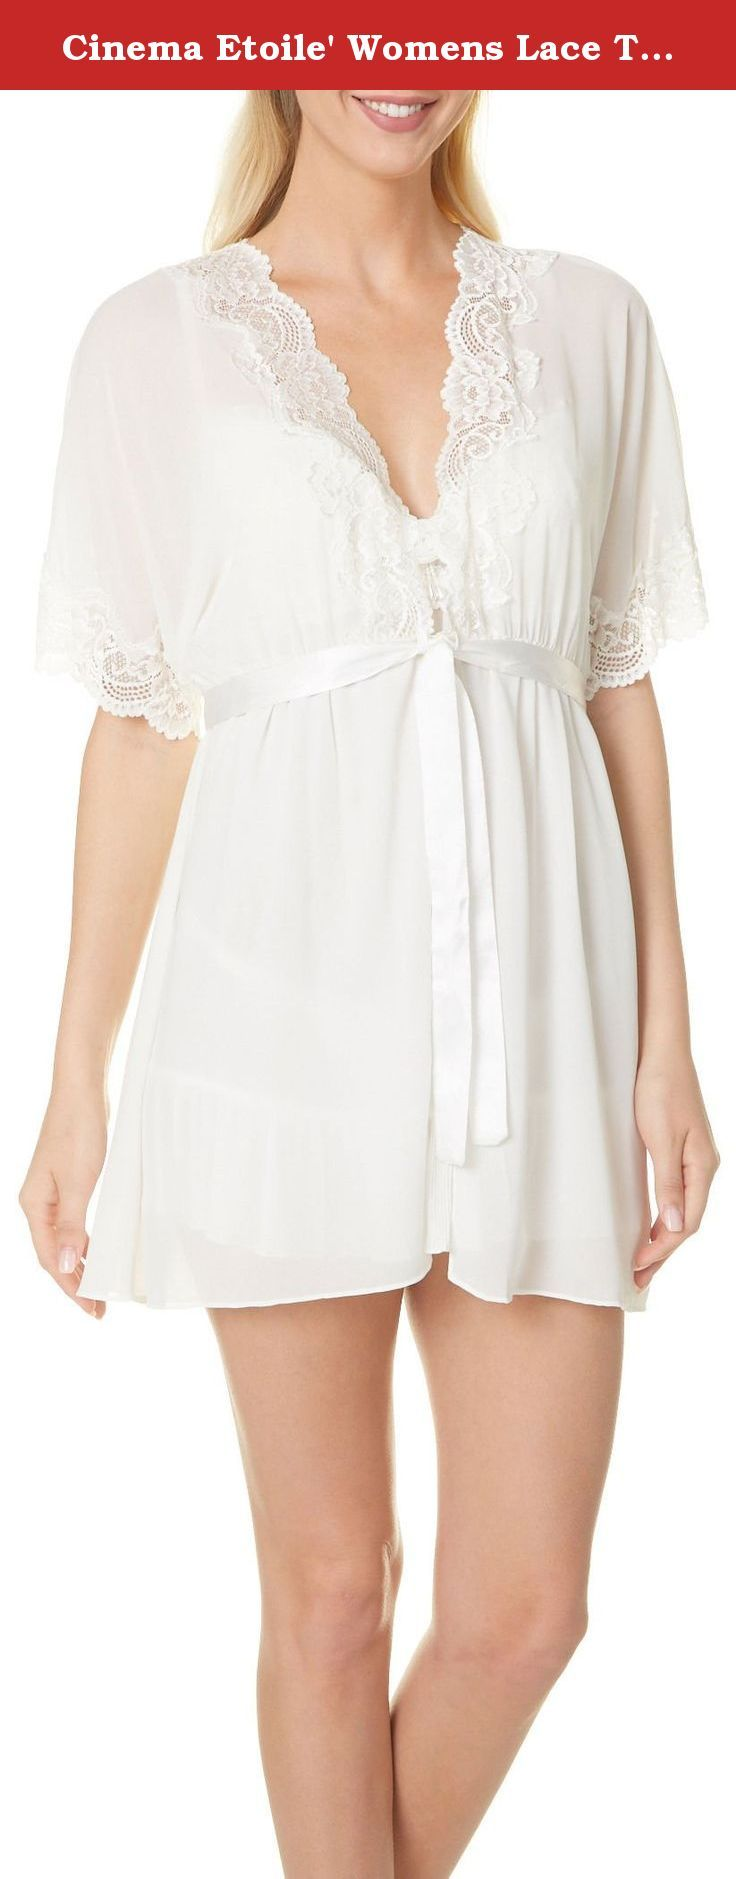 Cinema Etoile' Womens Lace Trim Short Robe X-Large White. Cinema Etoile' offers sophisticated lingerie with a flirty feminine flair. This robe features a sheer design, scalloped lace trim, and a solid satin belt. Perfect for bridal gifting. 100% Polyester.